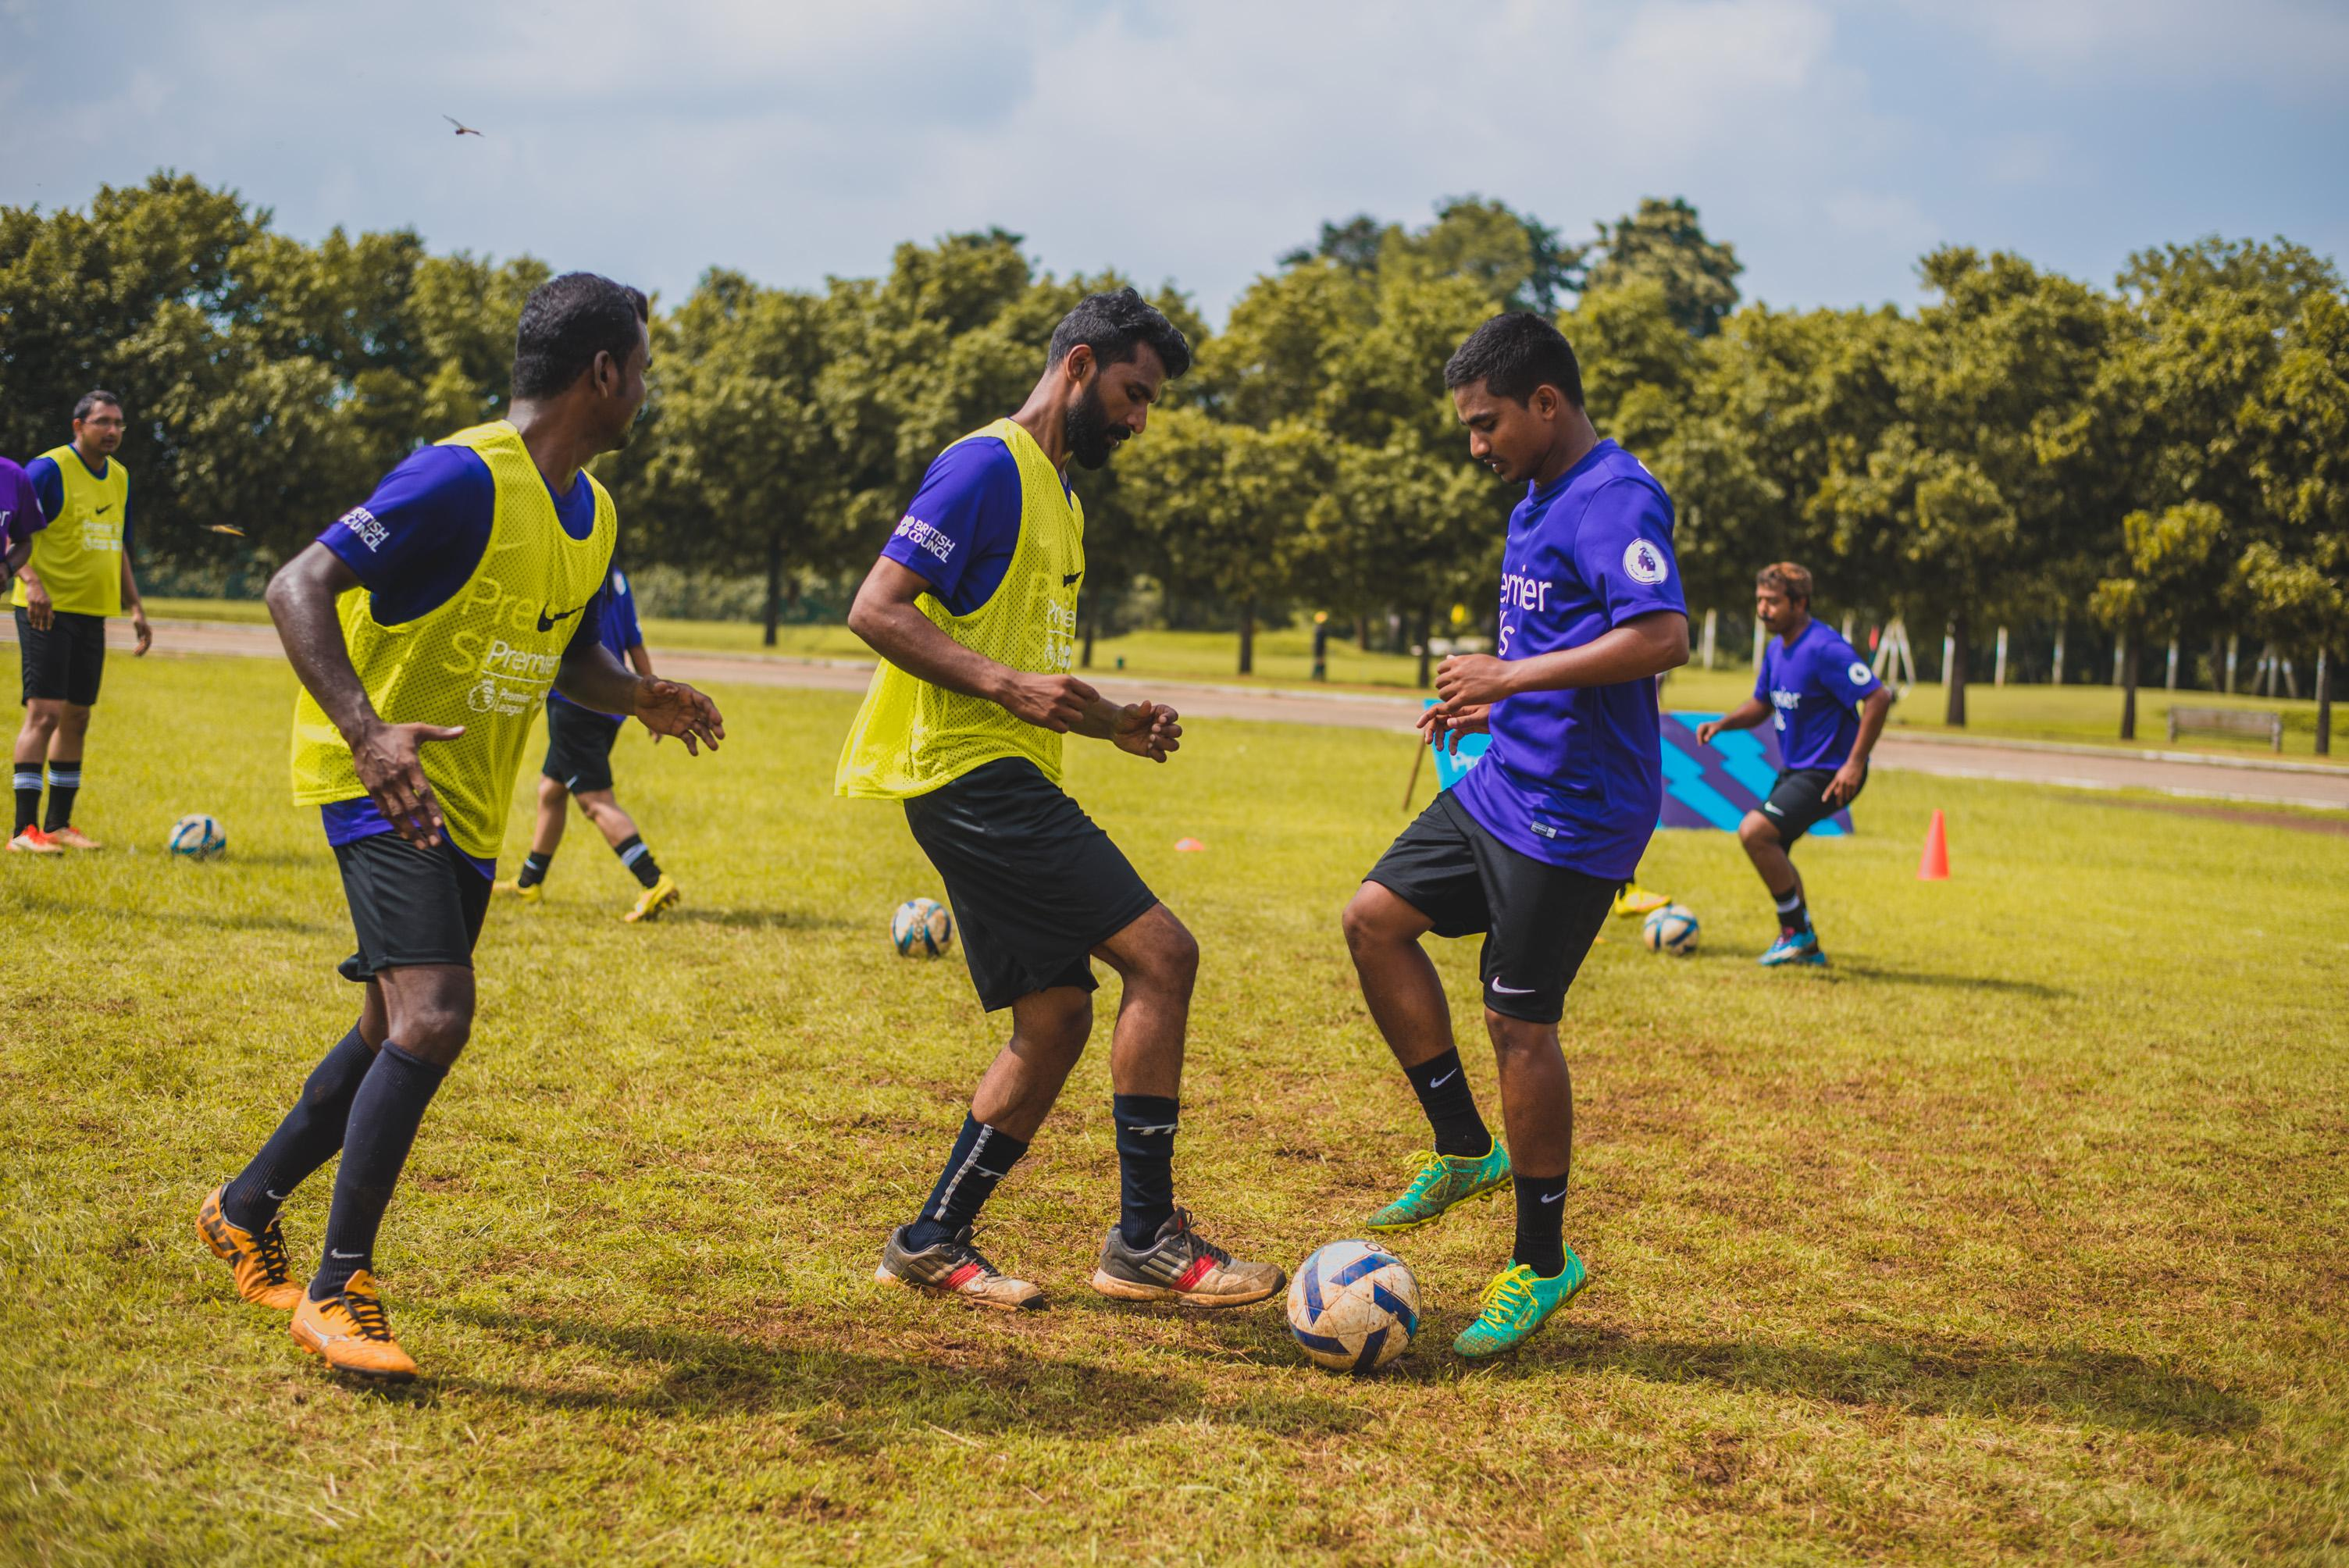 League's support for football development in India